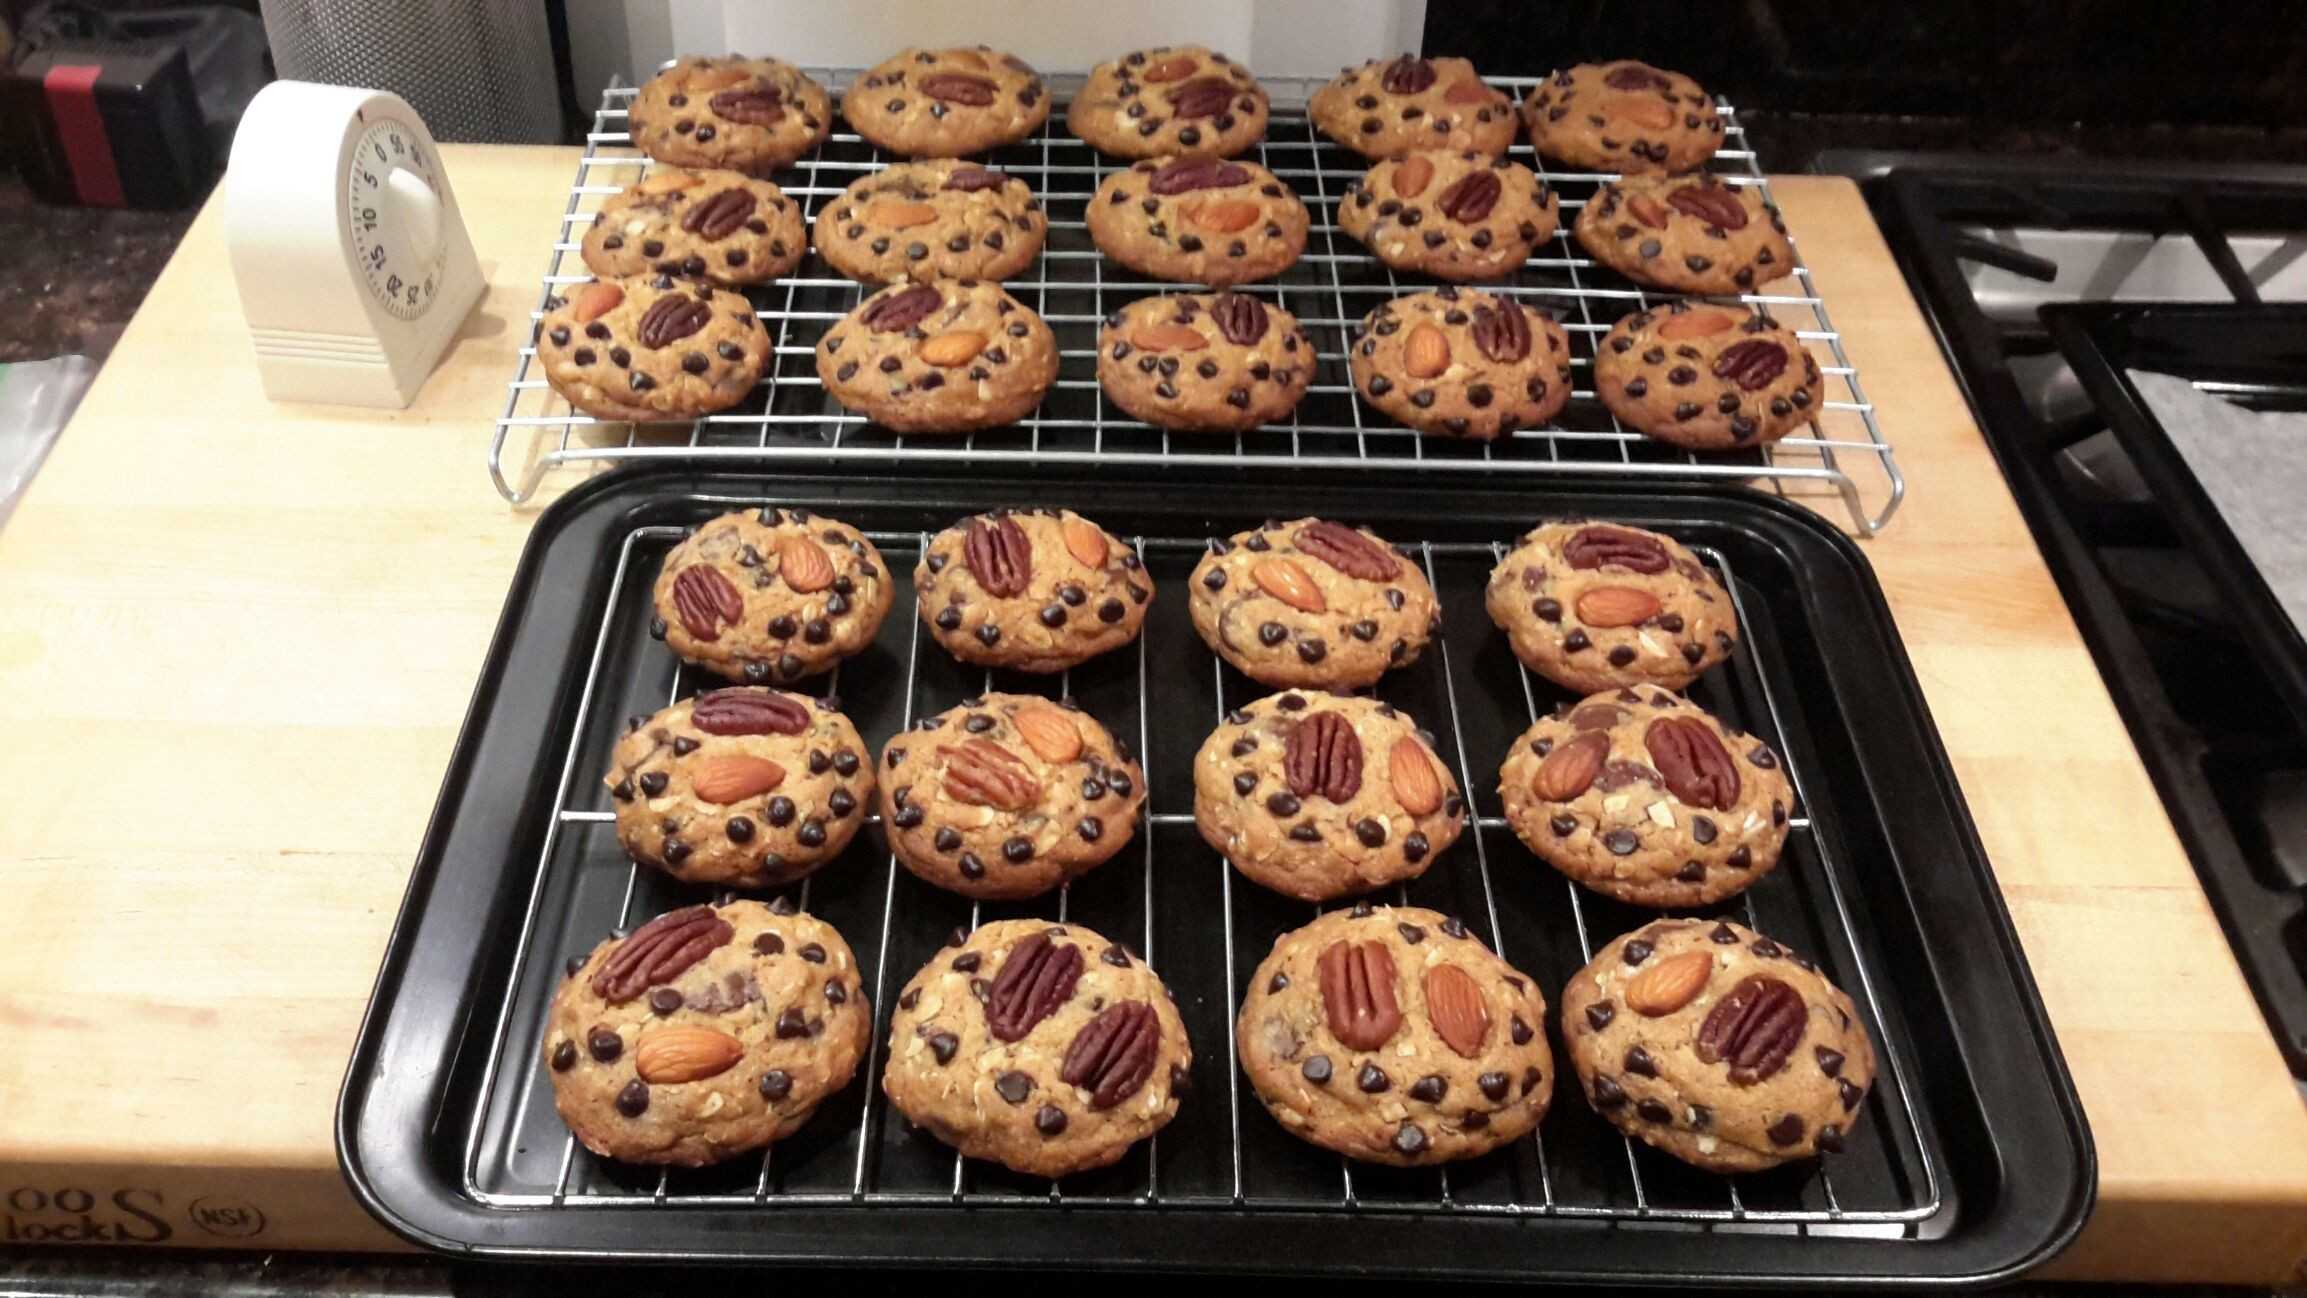 Nuts and Chocolate chips cookiees